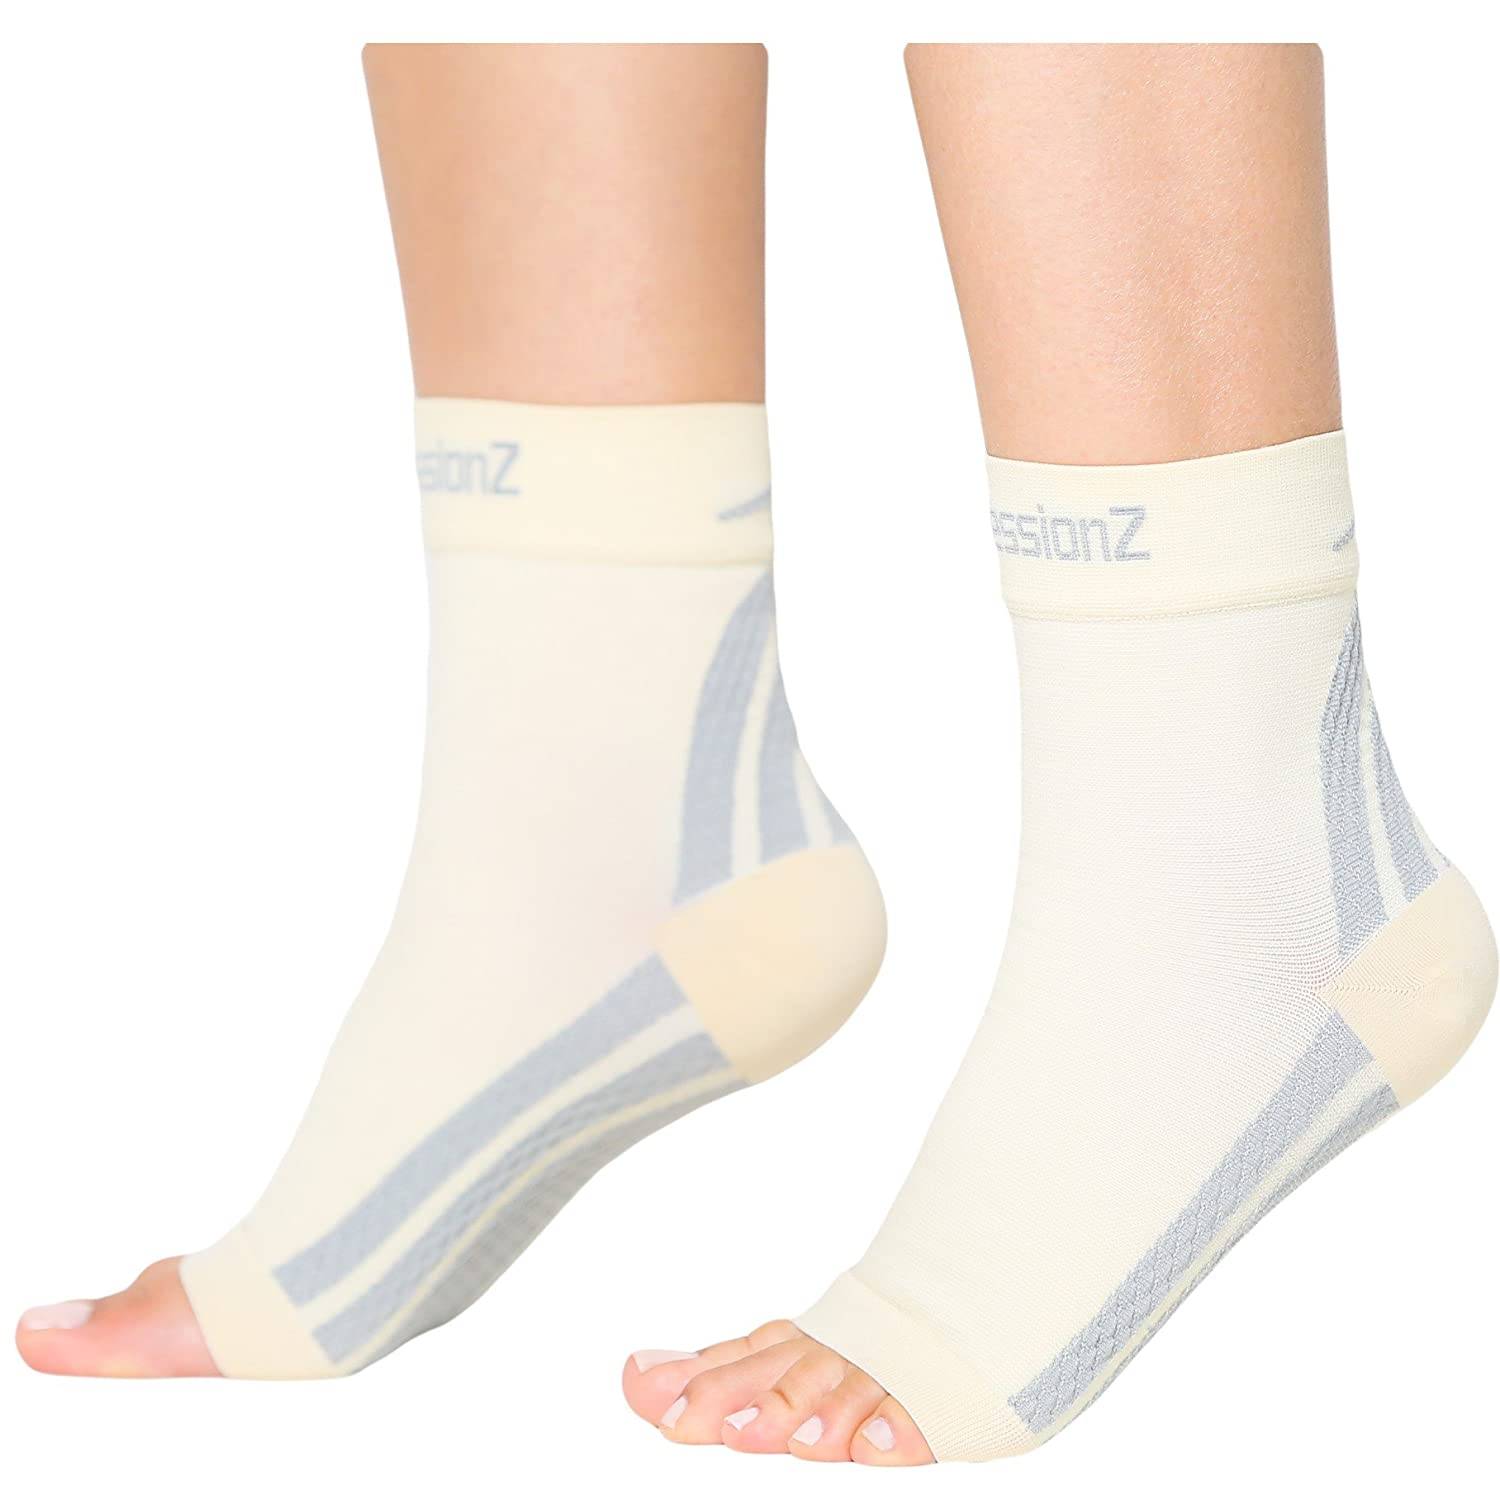 Foot Sleeves (1 Pair -L) Best Plantar Fasciitis Compression for Men & Women - Heel Arch Support/ Ankle Sock CompressionZ 7.88E+11